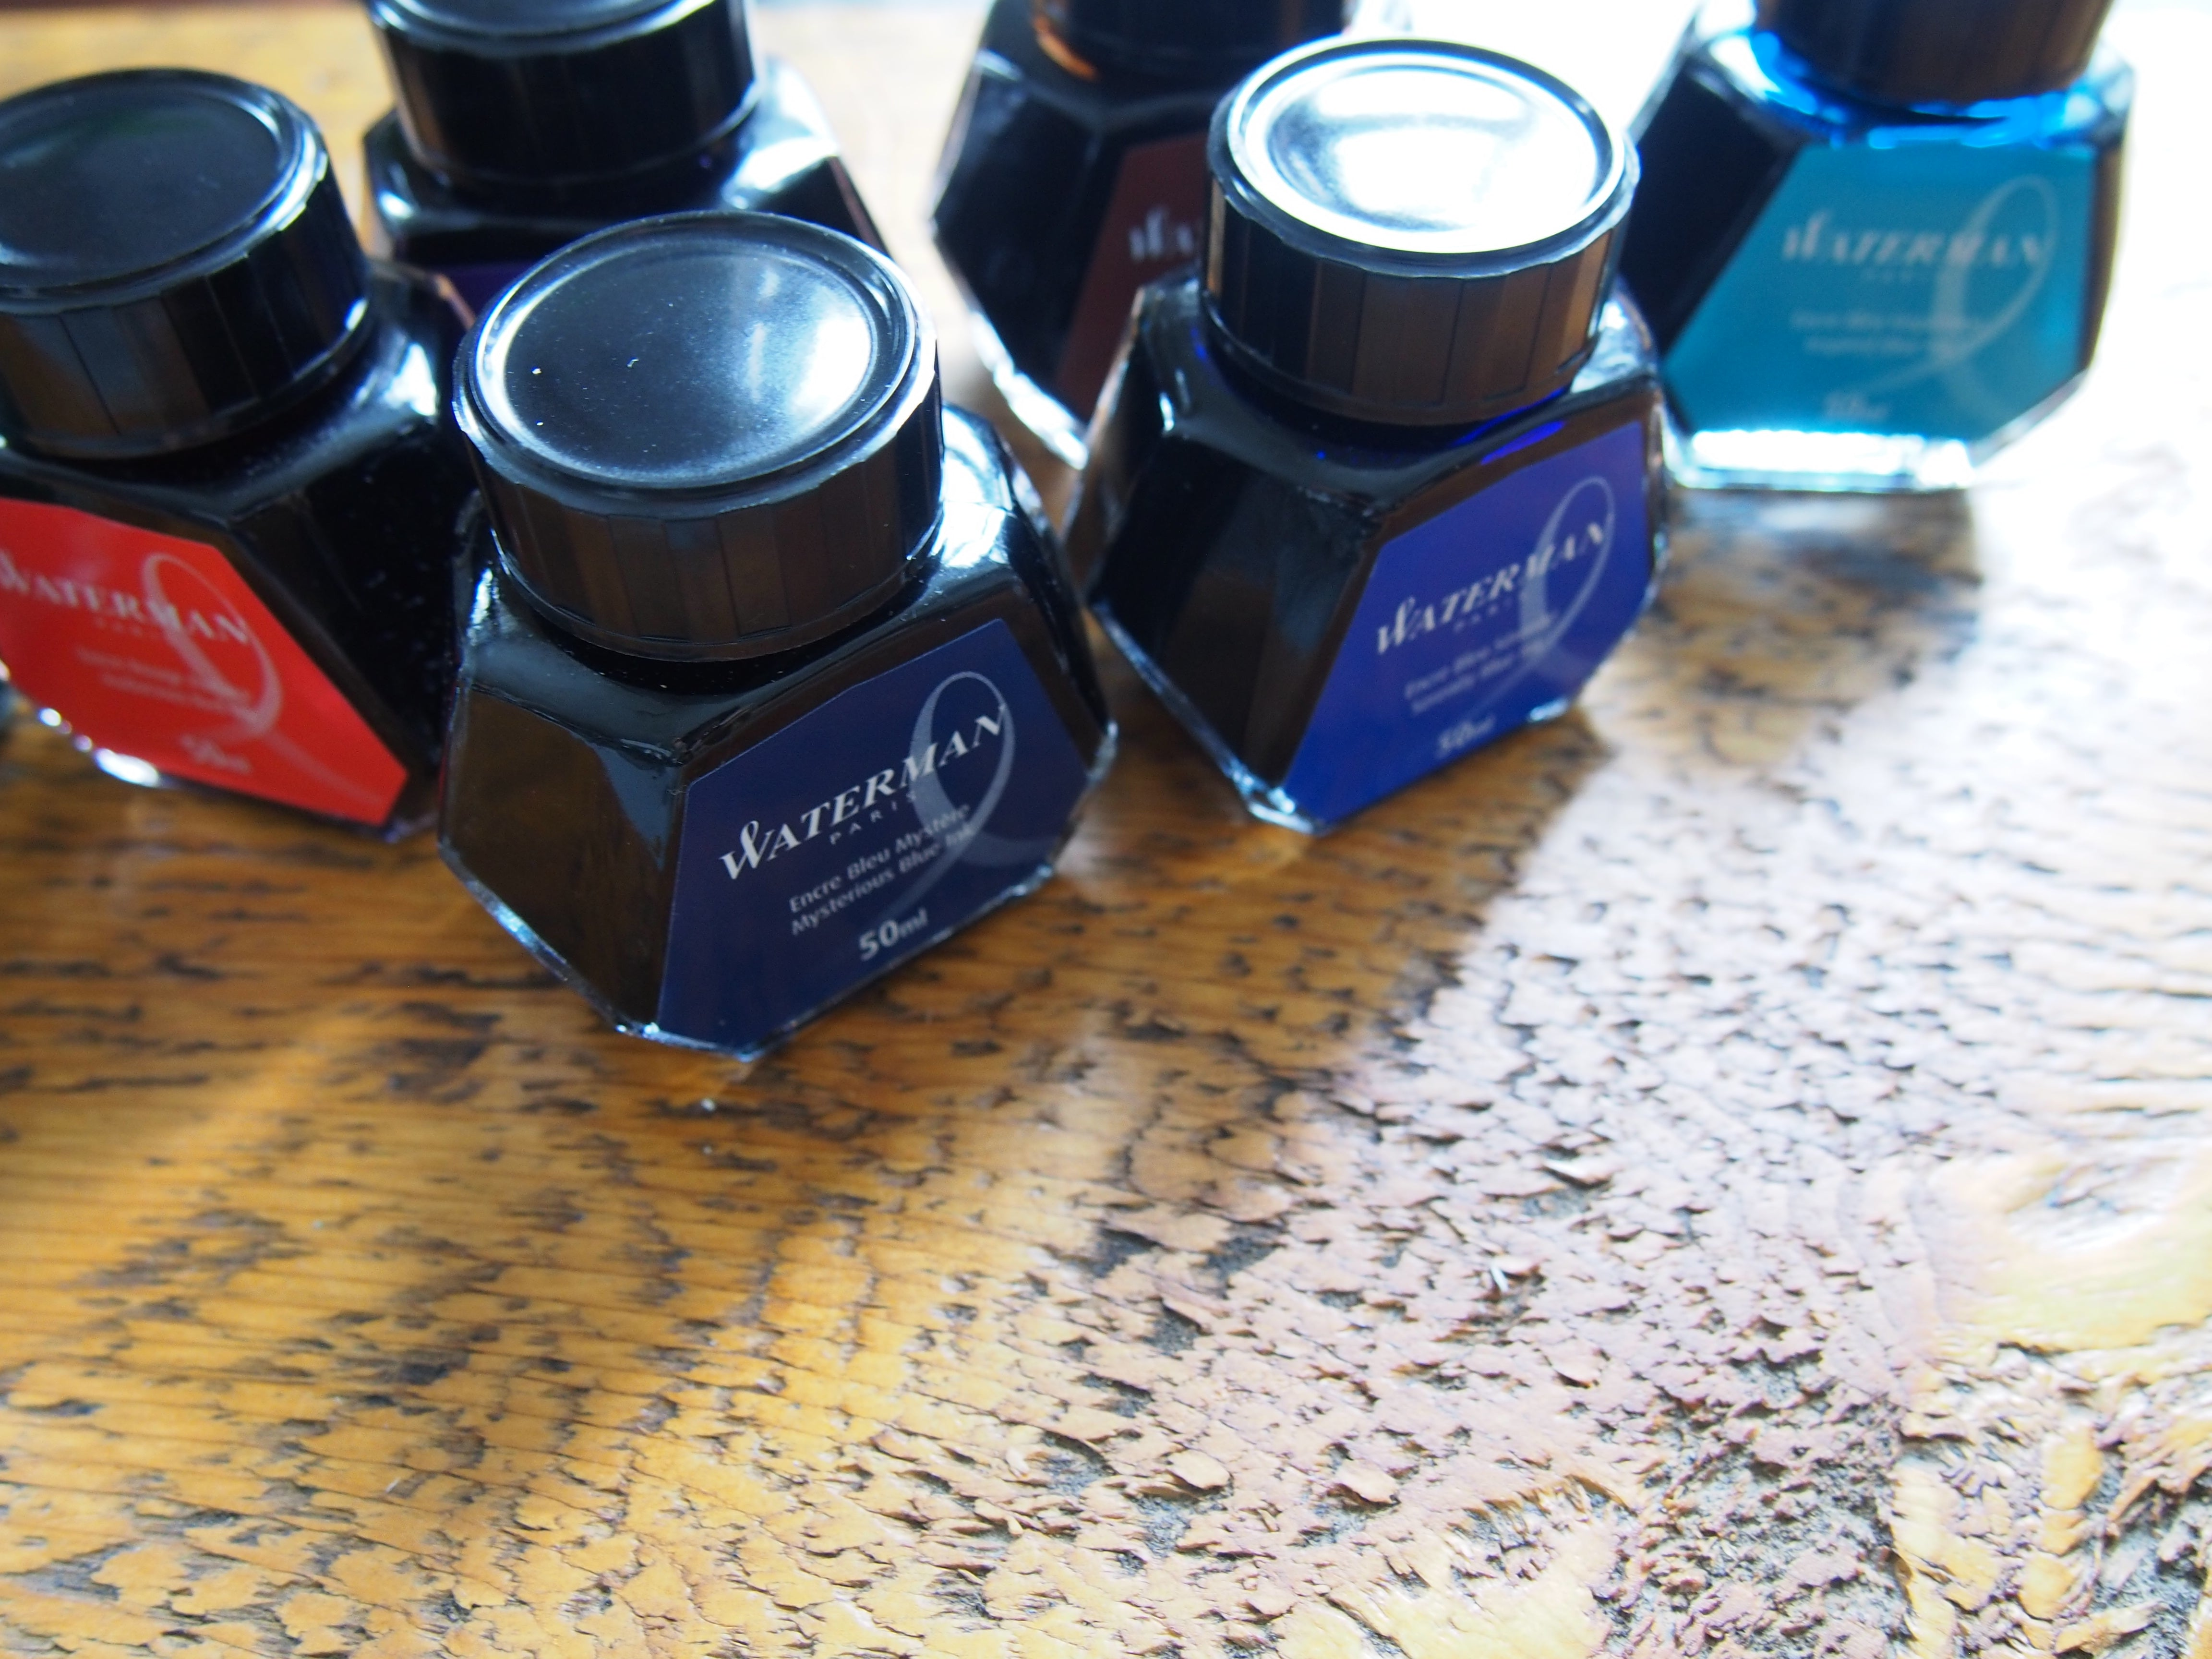 Waterman Fountain Pen Ink Mysterious Blue Serenity Blue Florida Blue South Sea Blue Toronto Ontario Canada wonderpens.ca Wonder Pens Blog